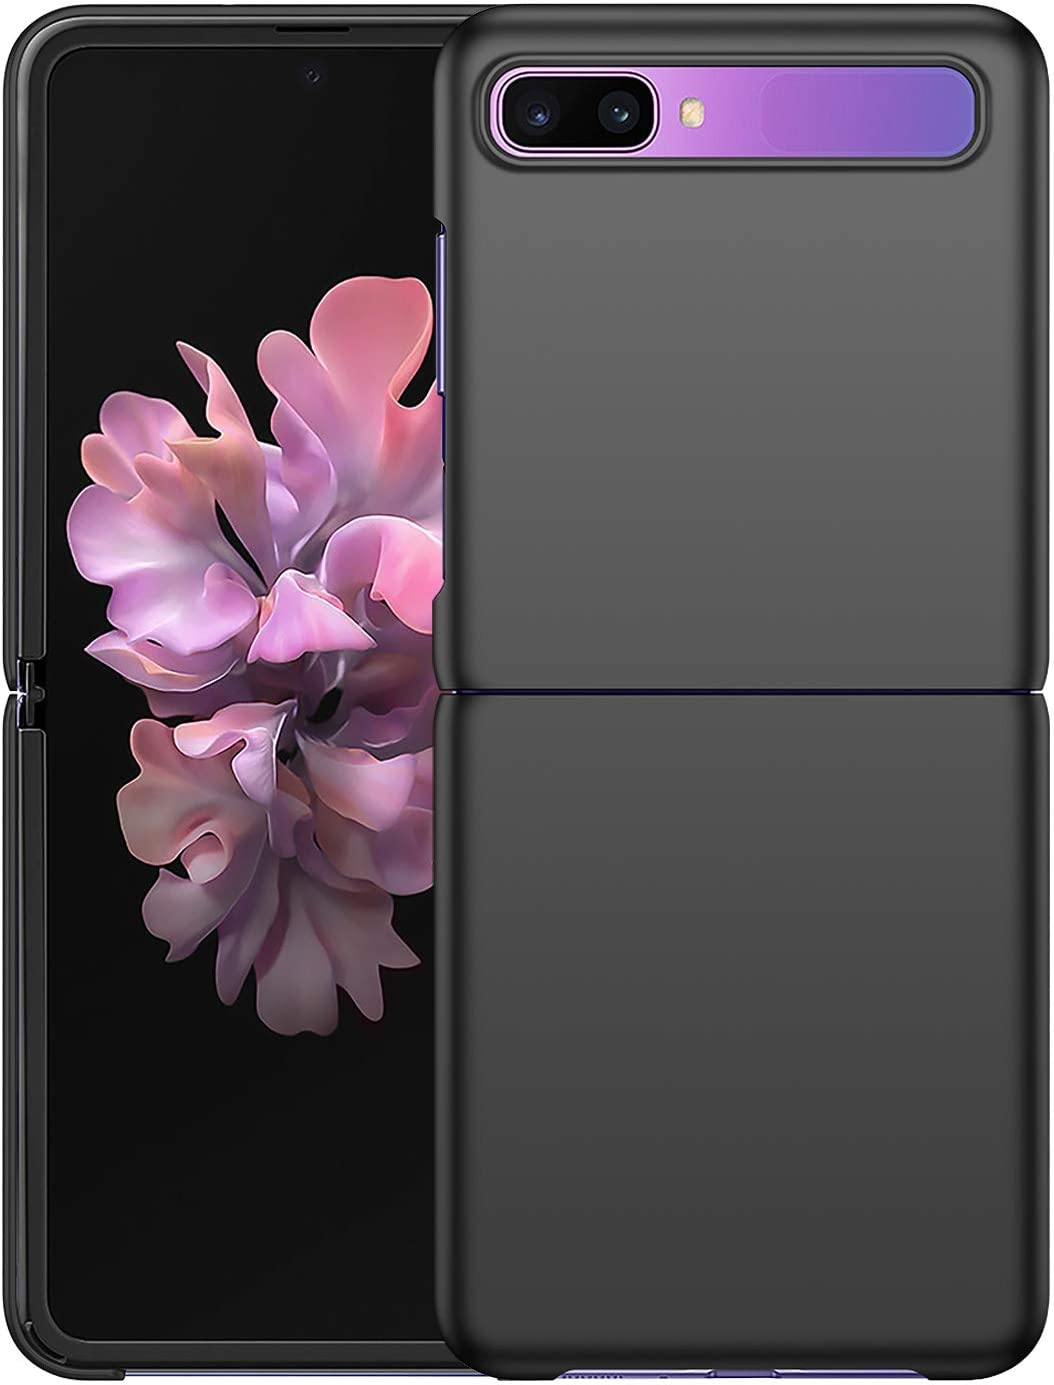 Arkour Silky Touch Designed for Samsung Galaxy Z Flip Case/Z Flip 5G Case, [Ultra-Thin & Lightweight] Matte Texture Hard Plastic Stylish Protective Slim Cover for Galaxy Z Flip (Black)